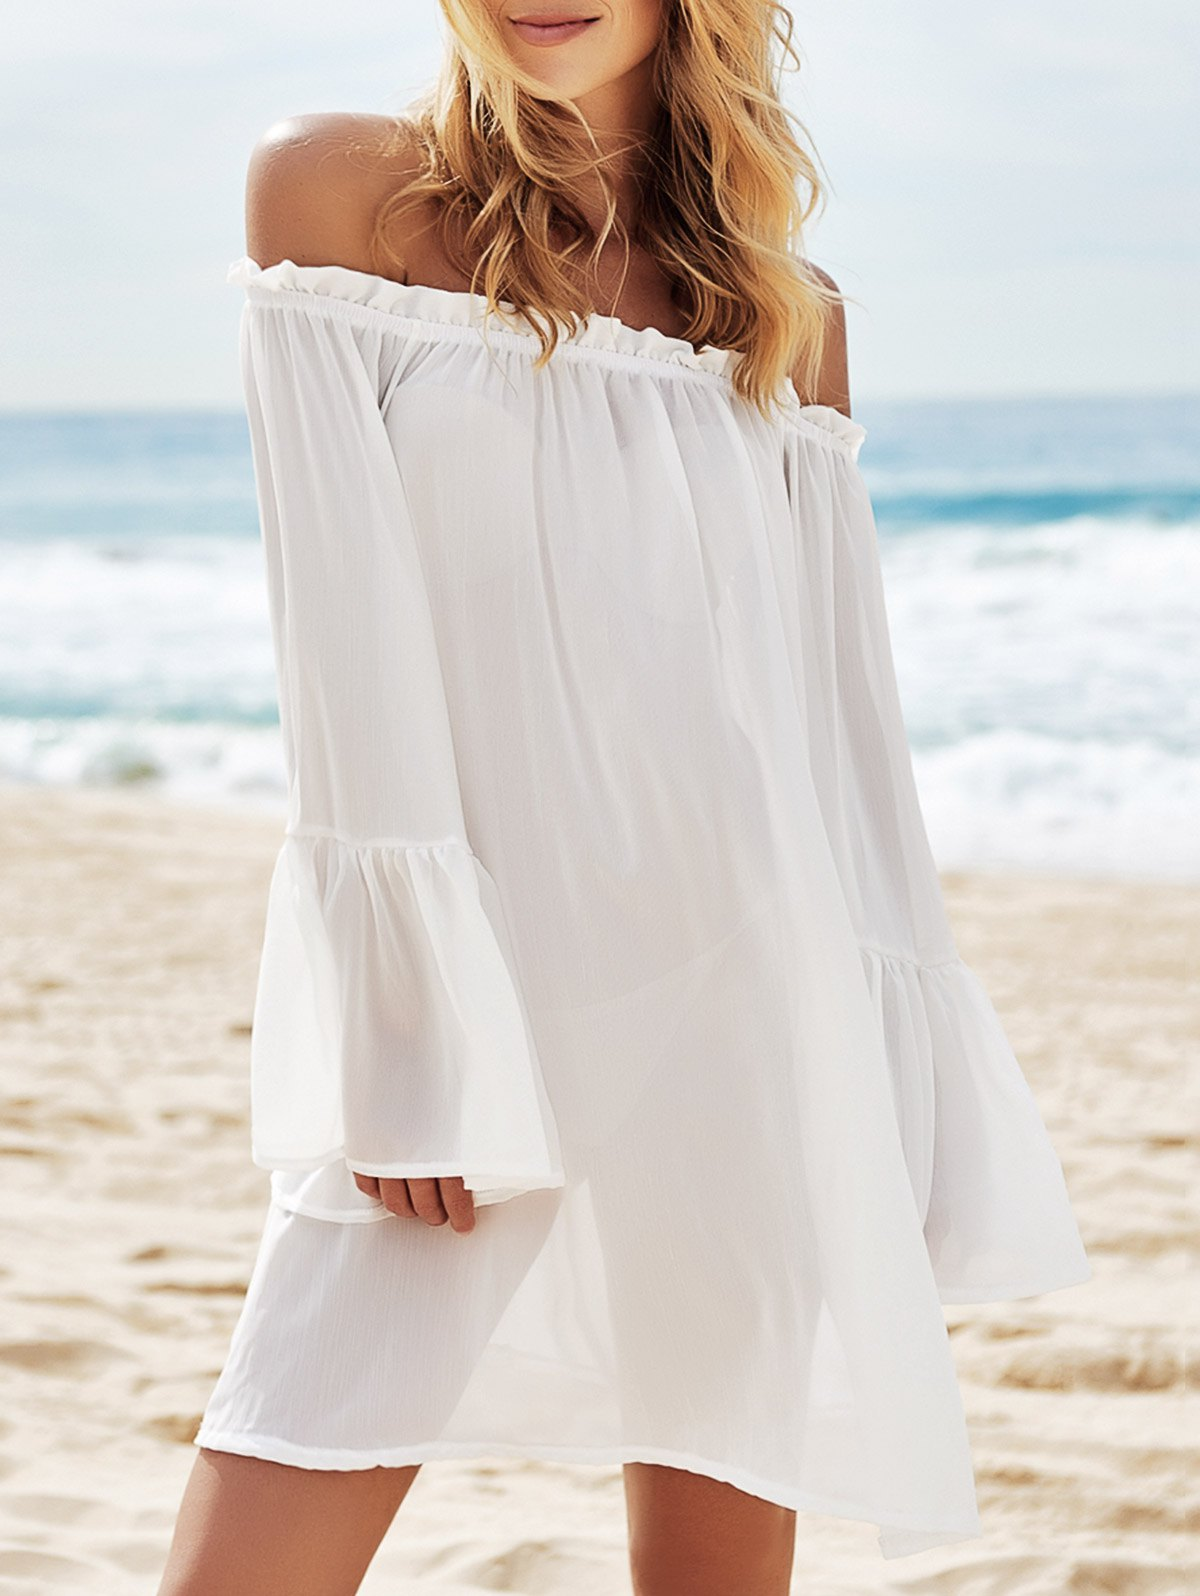 Slash Neck See-Through Solid Color Cover-Up - WHITE ONE SIZE(FIT SIZE XS TO M)